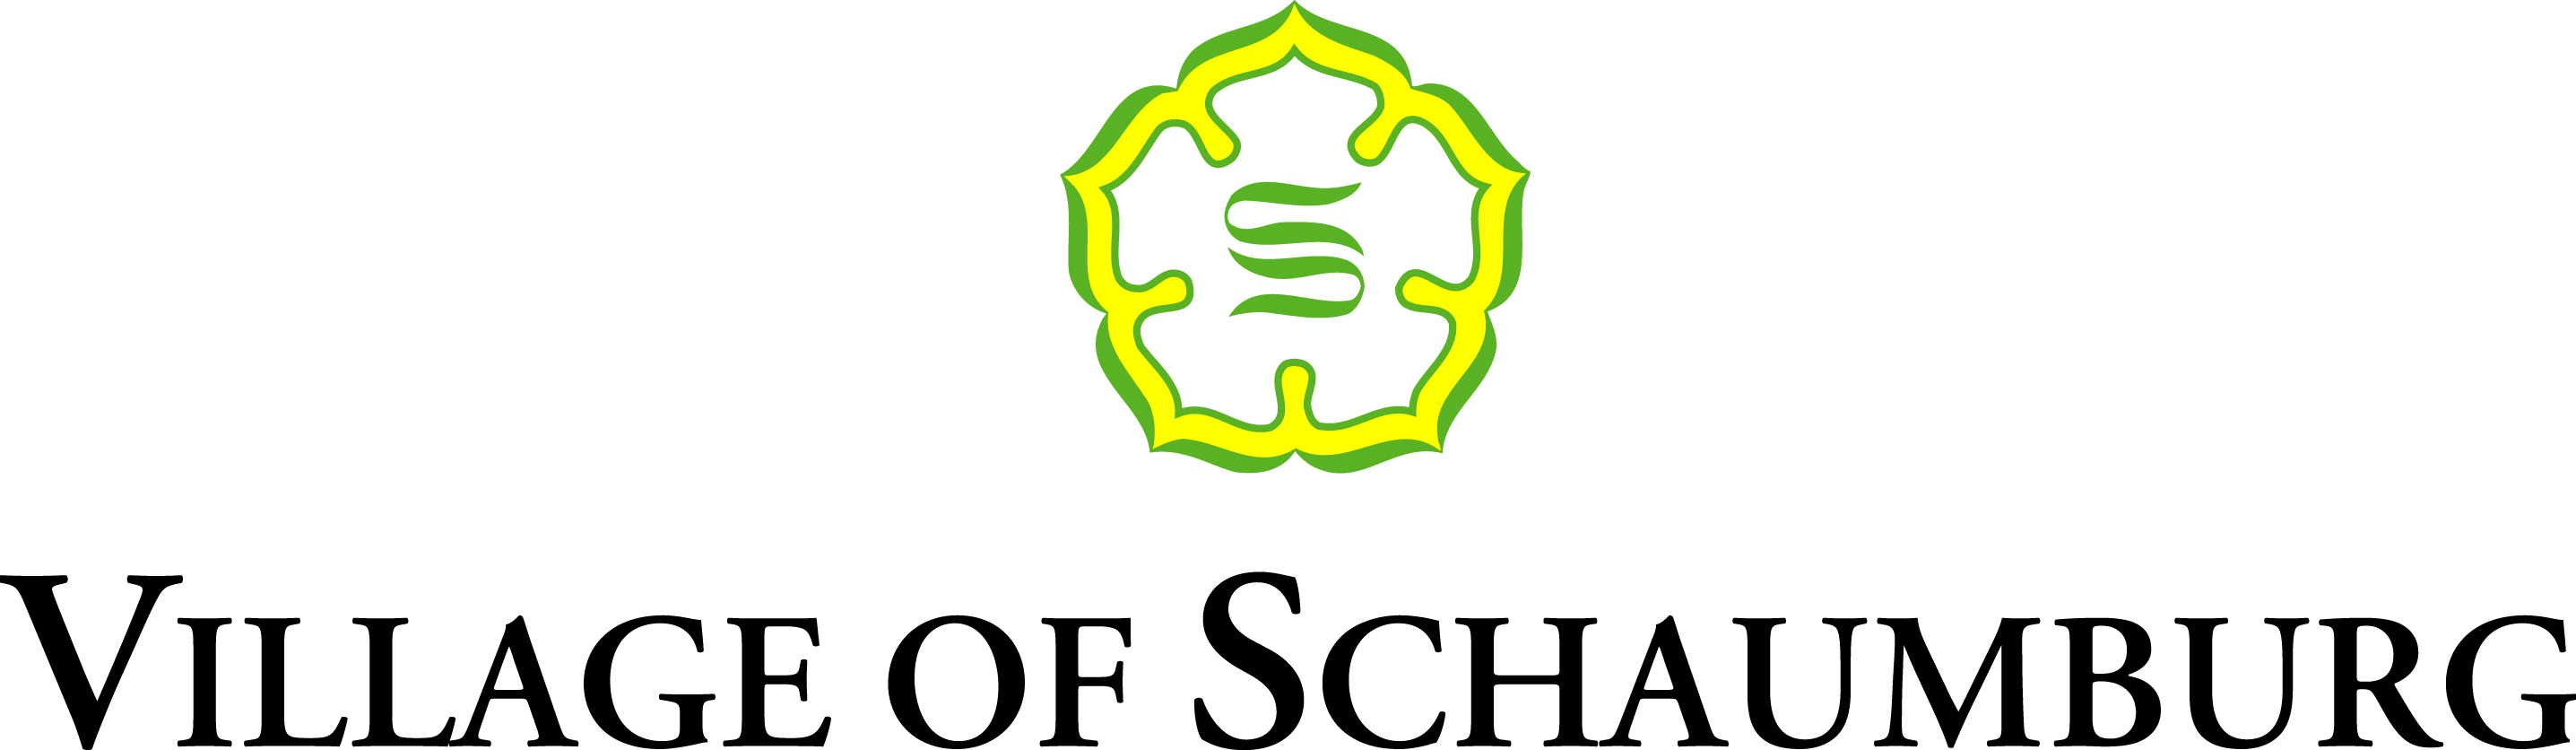 The seal of the Village of Schaumburg, IL